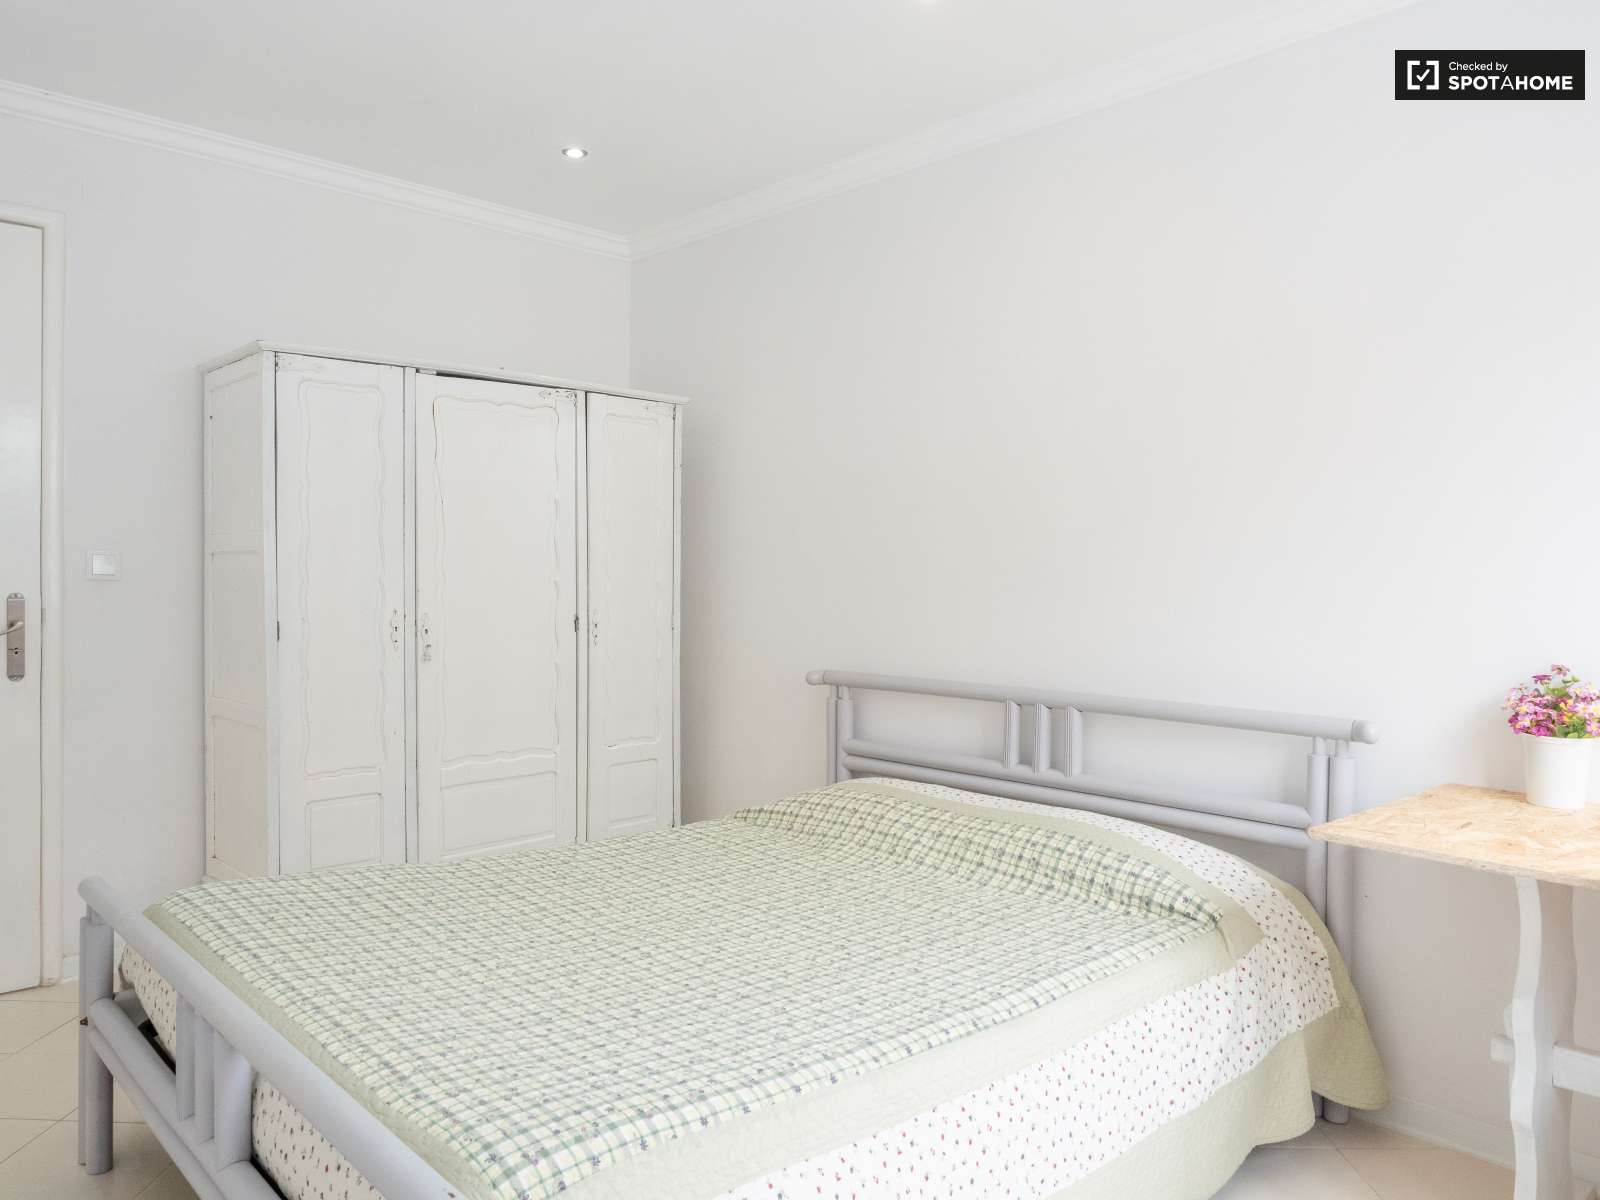 Double bed in Rooms to rent in spacious 6-bedroom house in Caparica, Lisbon